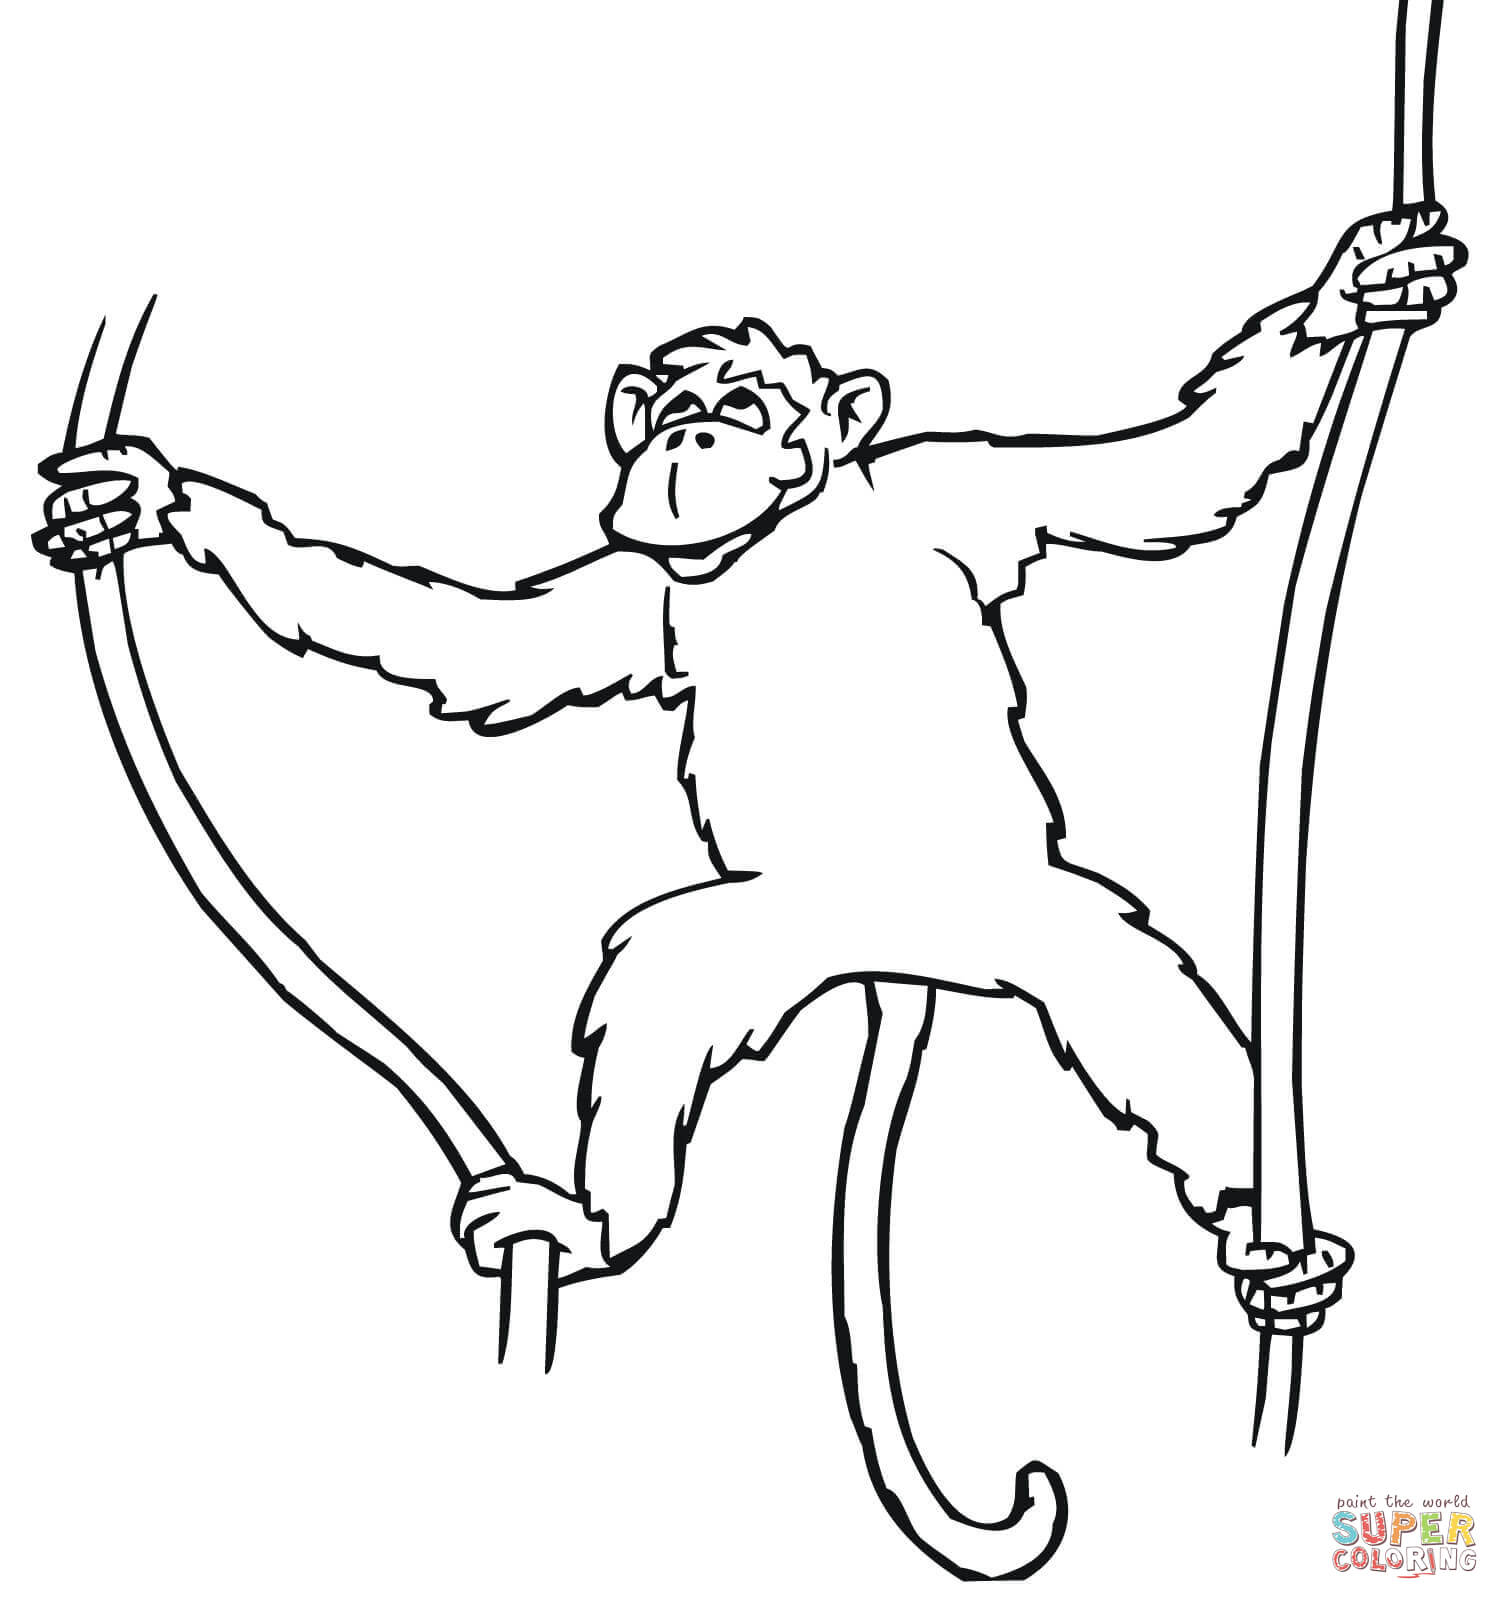 1500x1600 Hanging Monkey Drawing Spider Monkey Hanging From Tree Coloring